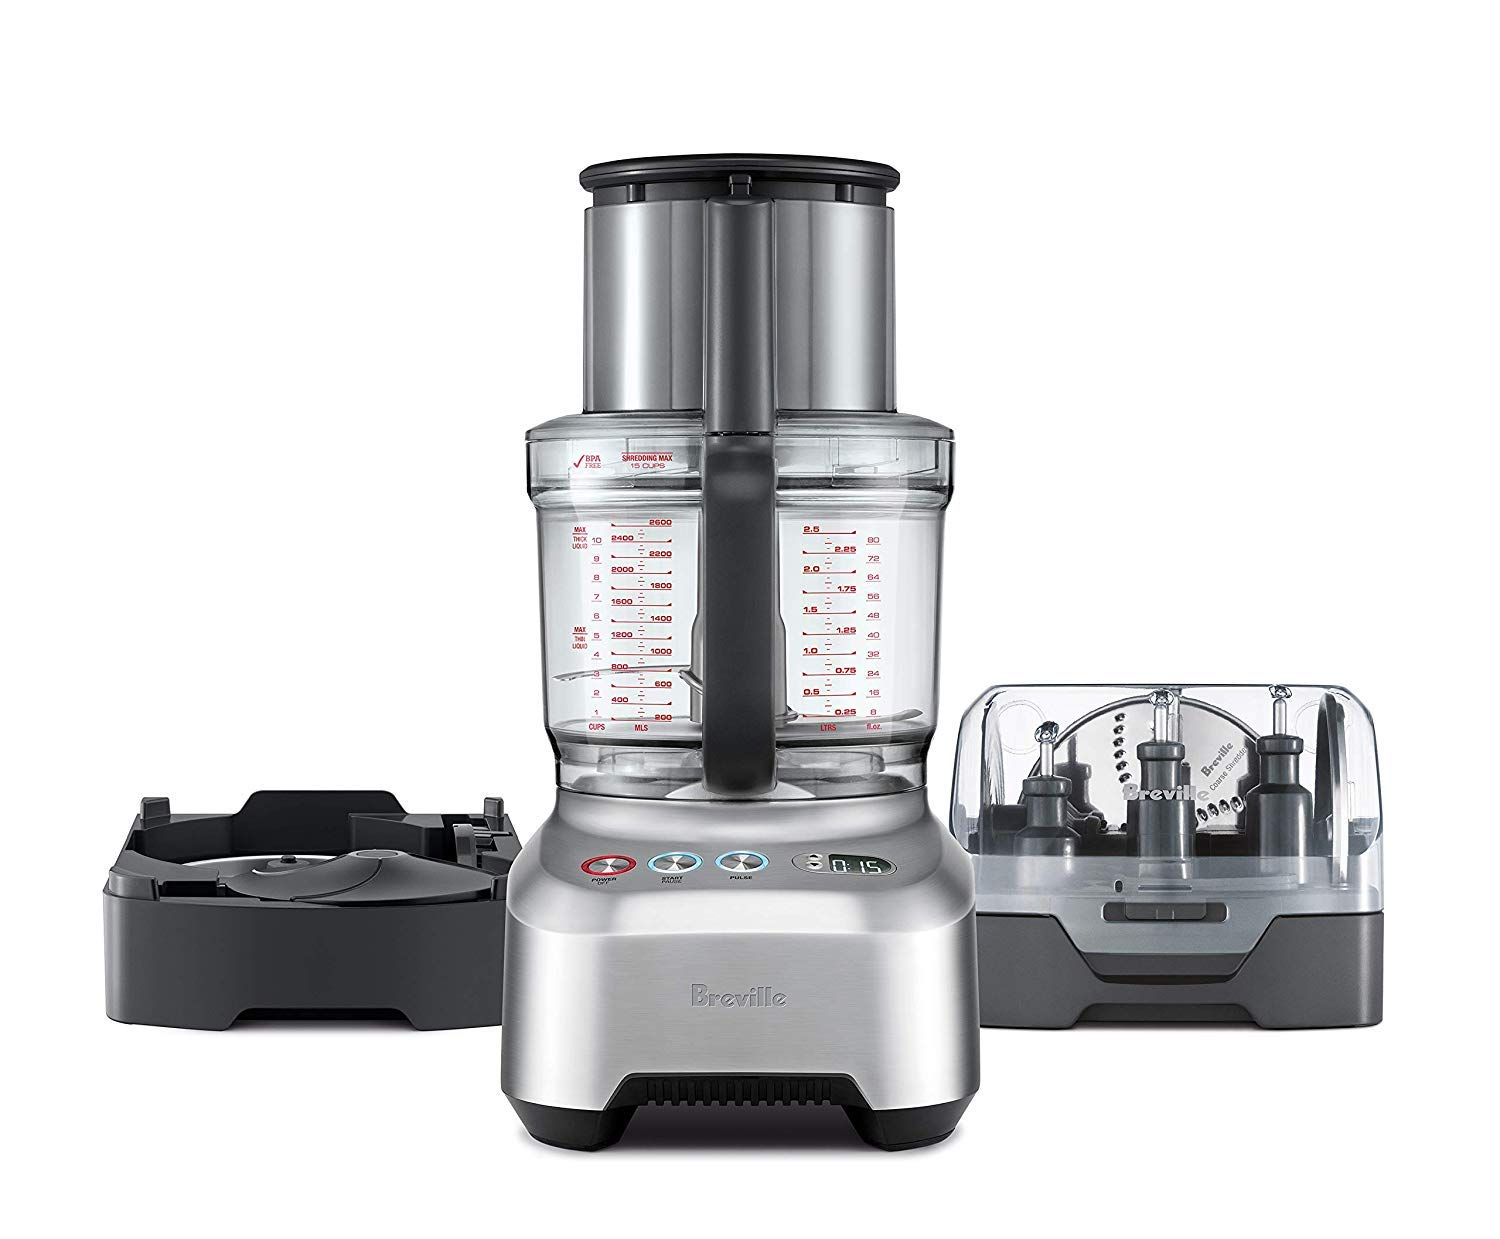 Breville Sous Chef 16 Peel & Dice All-In-One Food Processor Bundle w/Peeling and 12mm Dicing Attachment - BFP820 by Breville (Image #1)